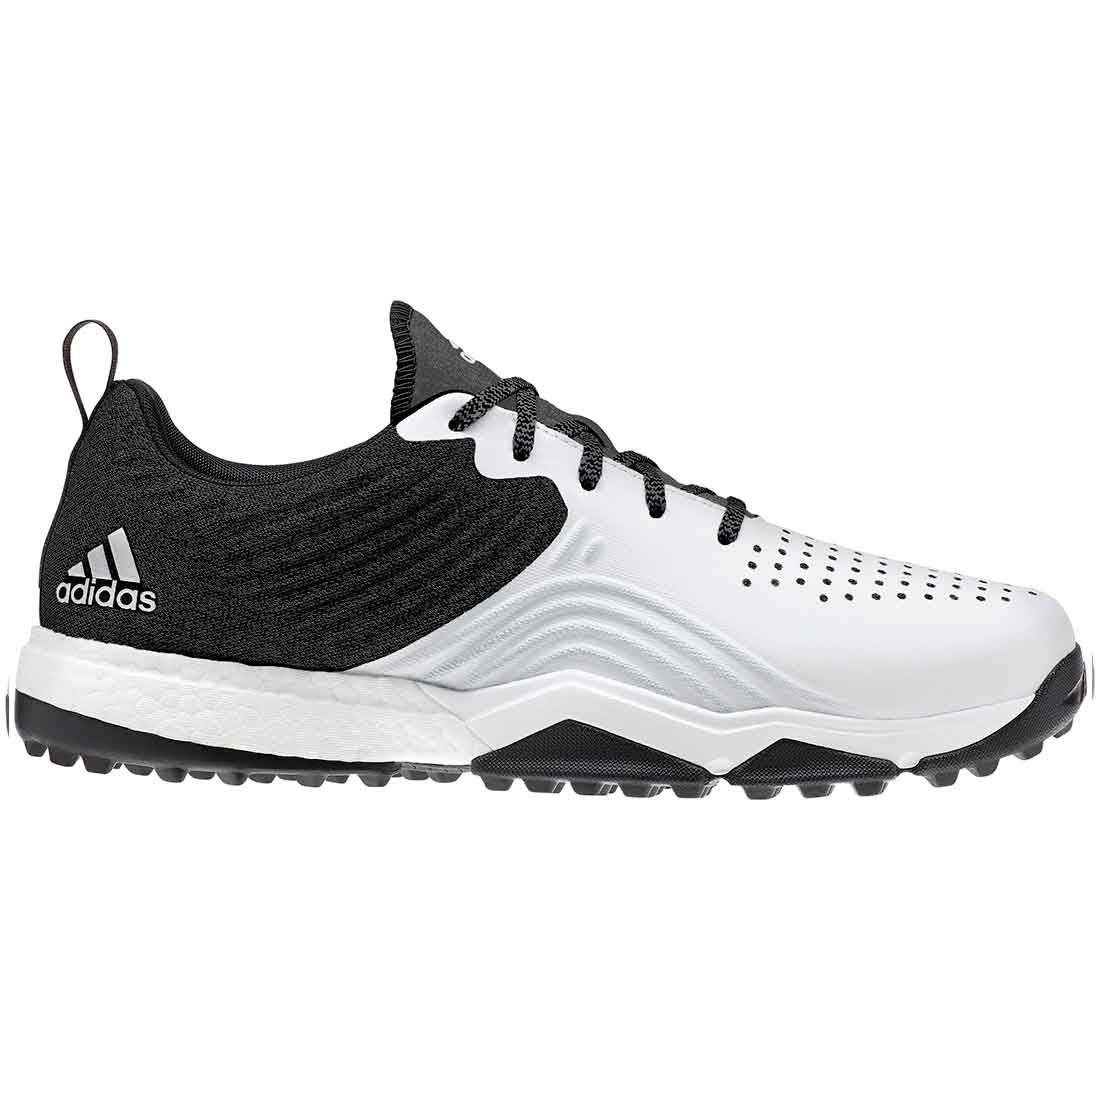 Buy Adidas AdiPower 4orged S Golf Shoes